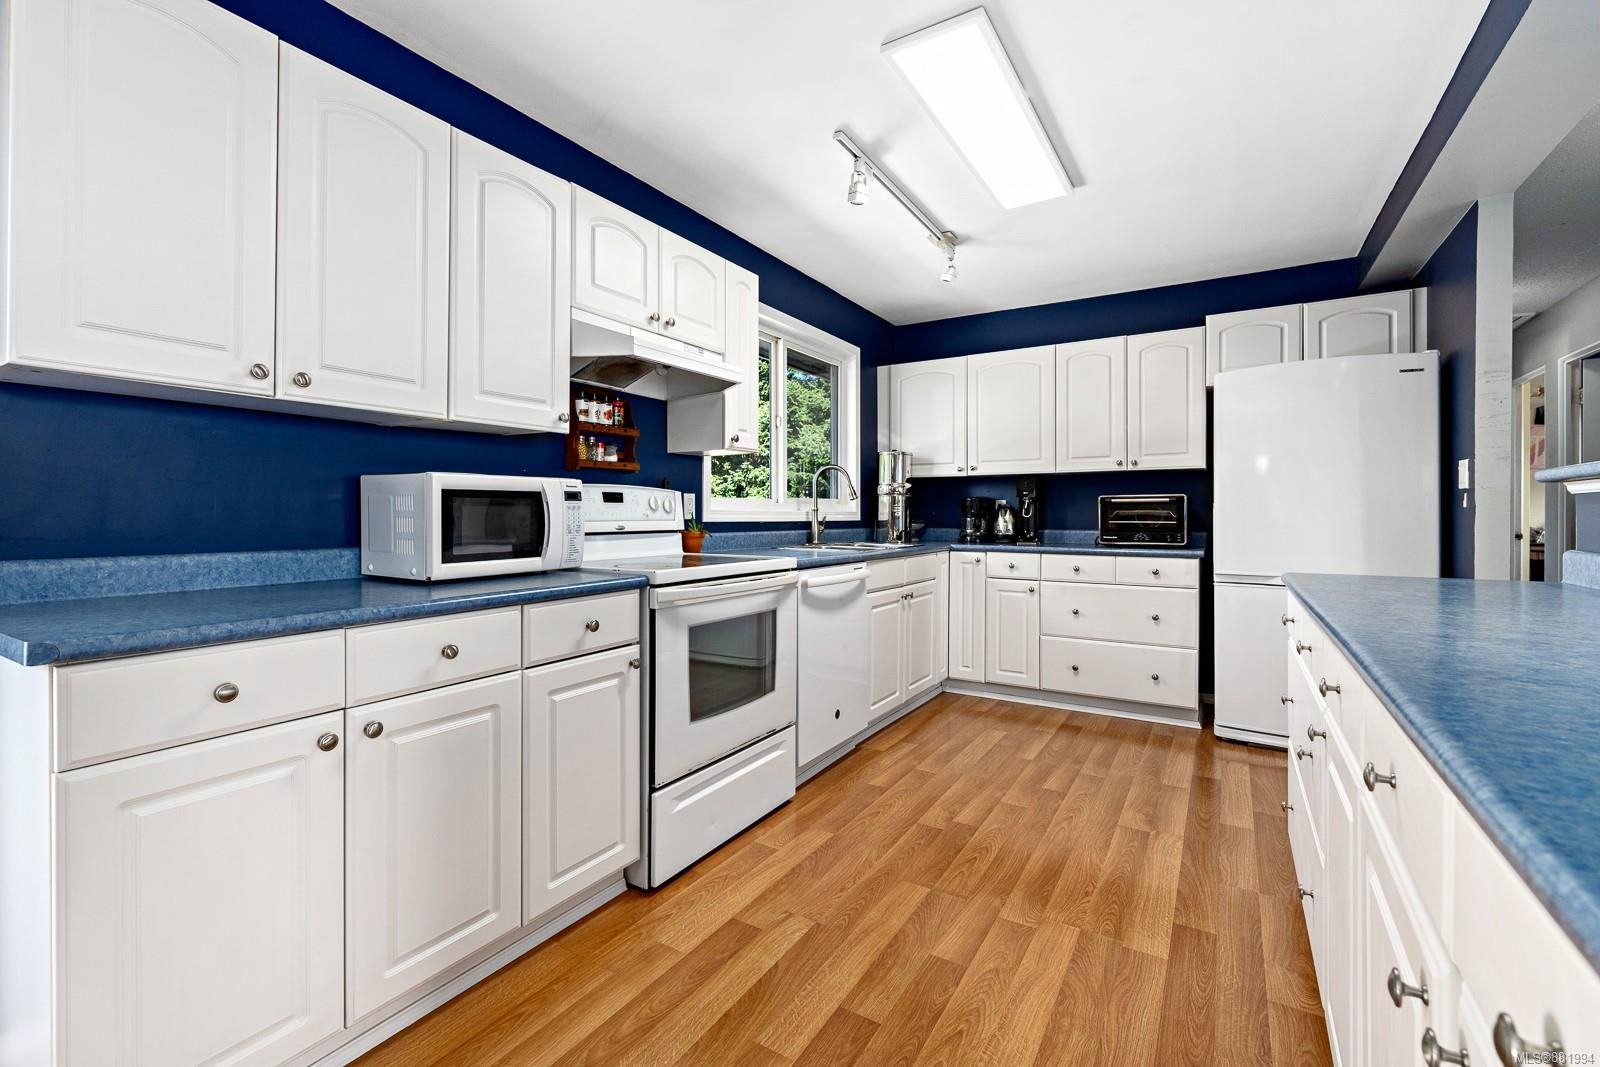 Photo 4: Photos: 1935 Fitzgerald Ave in : CV Courtenay City House for sale (Comox Valley)  : MLS®# 881994